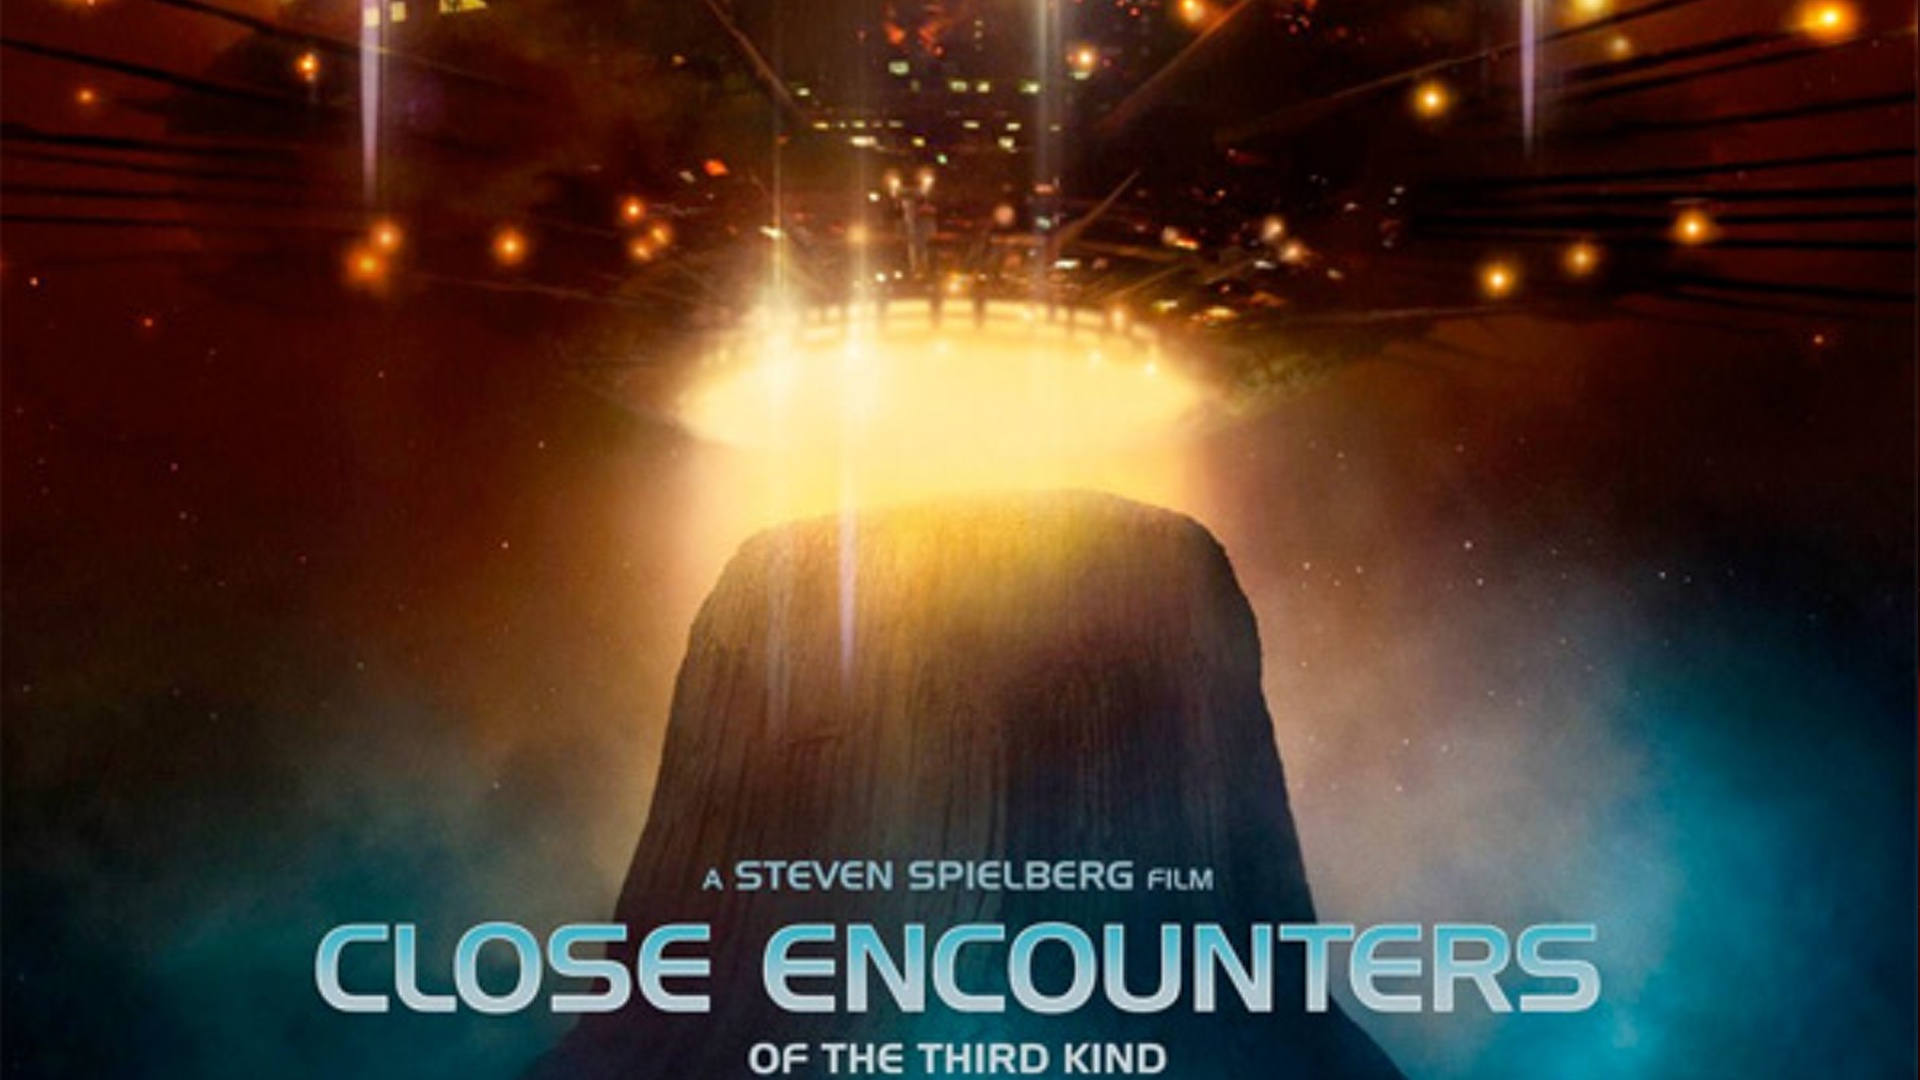 close encounters of the third kind essay Find great deals on ebay for close encounters of the third kind and close encounters of the third kind blu ray shop with confidence.